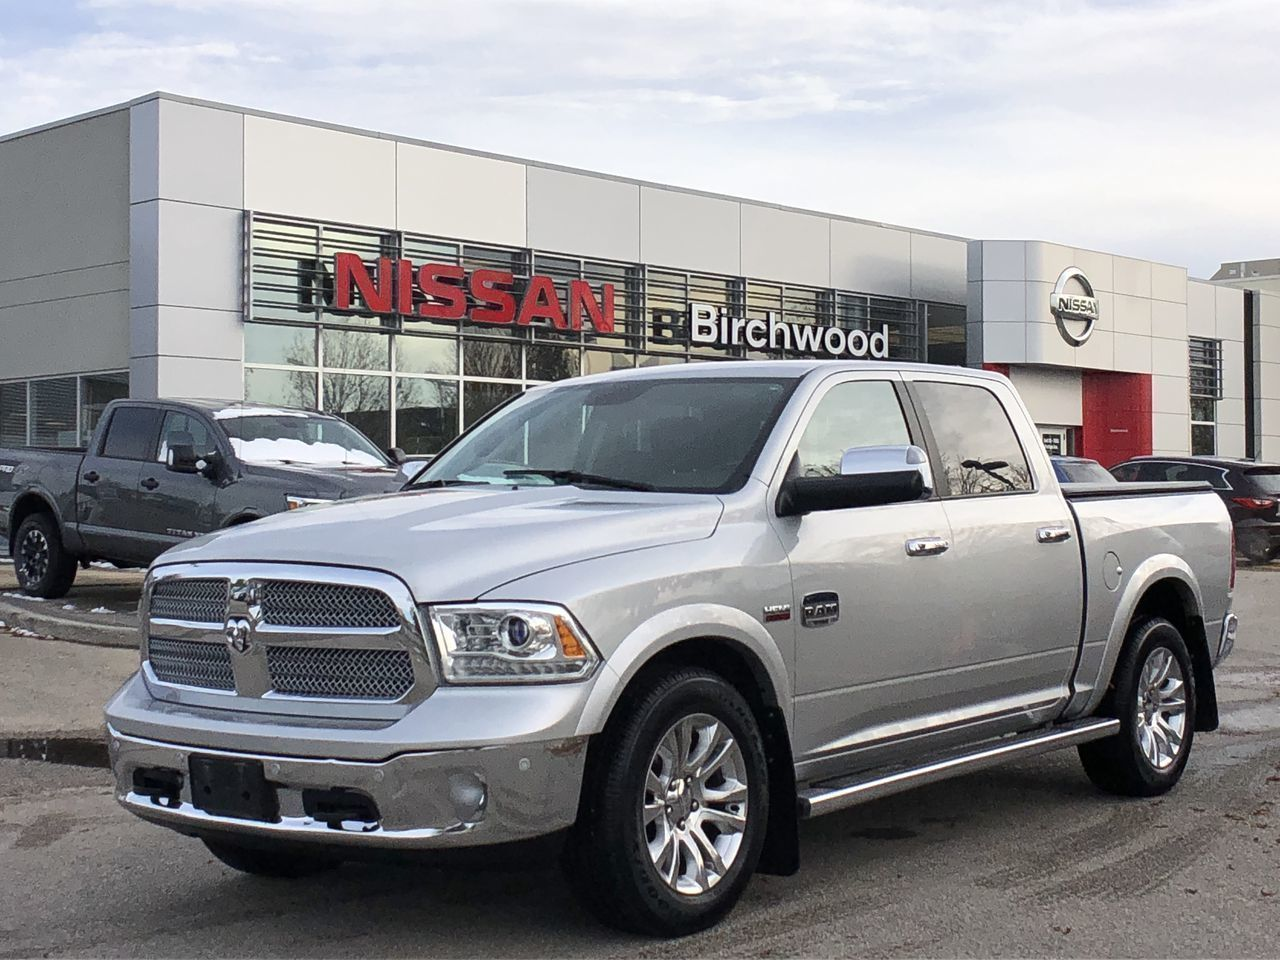 2014 Ram 1500 Laramie Longhorn Sunroof, Navigation , Leather! Truck